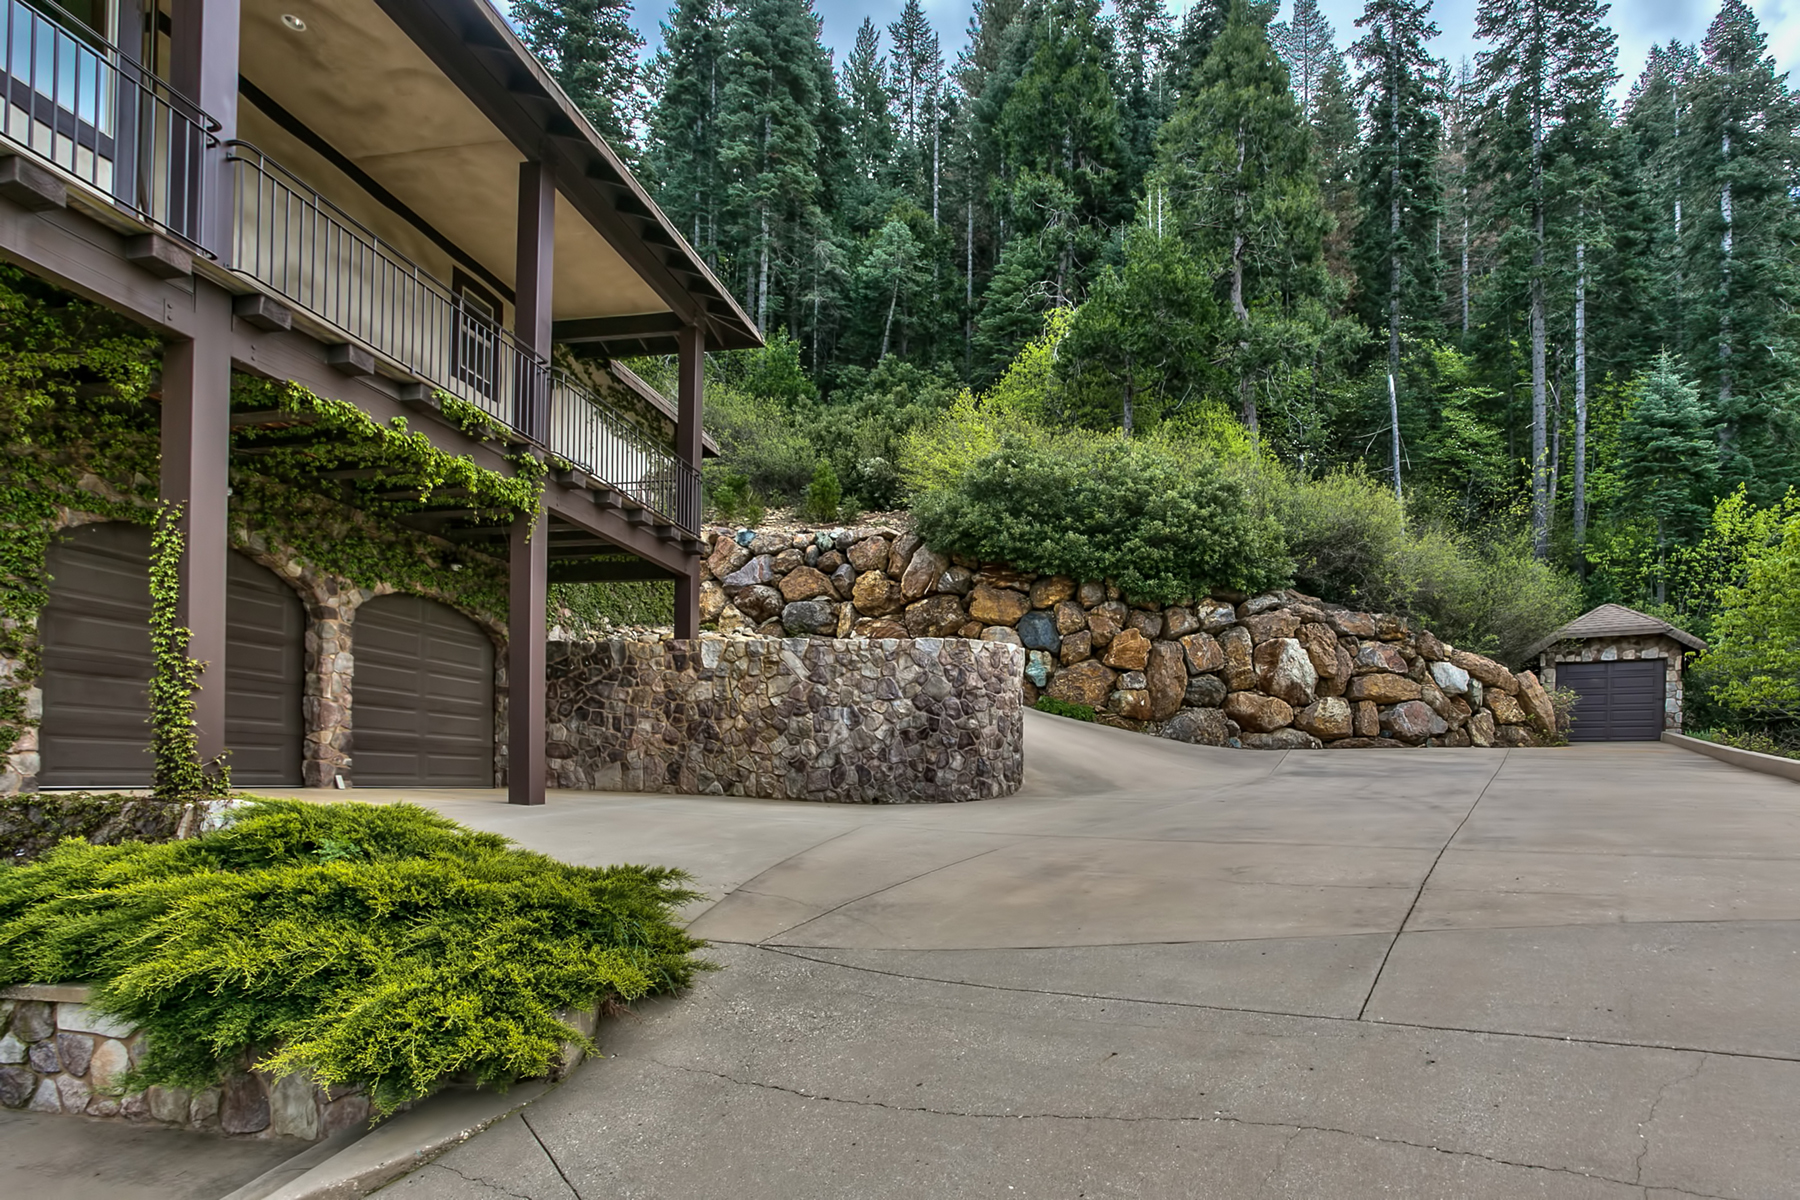 Additional photo for property listing at 28175 Myhrer Way, Nevada City, CA, 95959 28175 Myhrer Way Nevada City, California 95959 United States